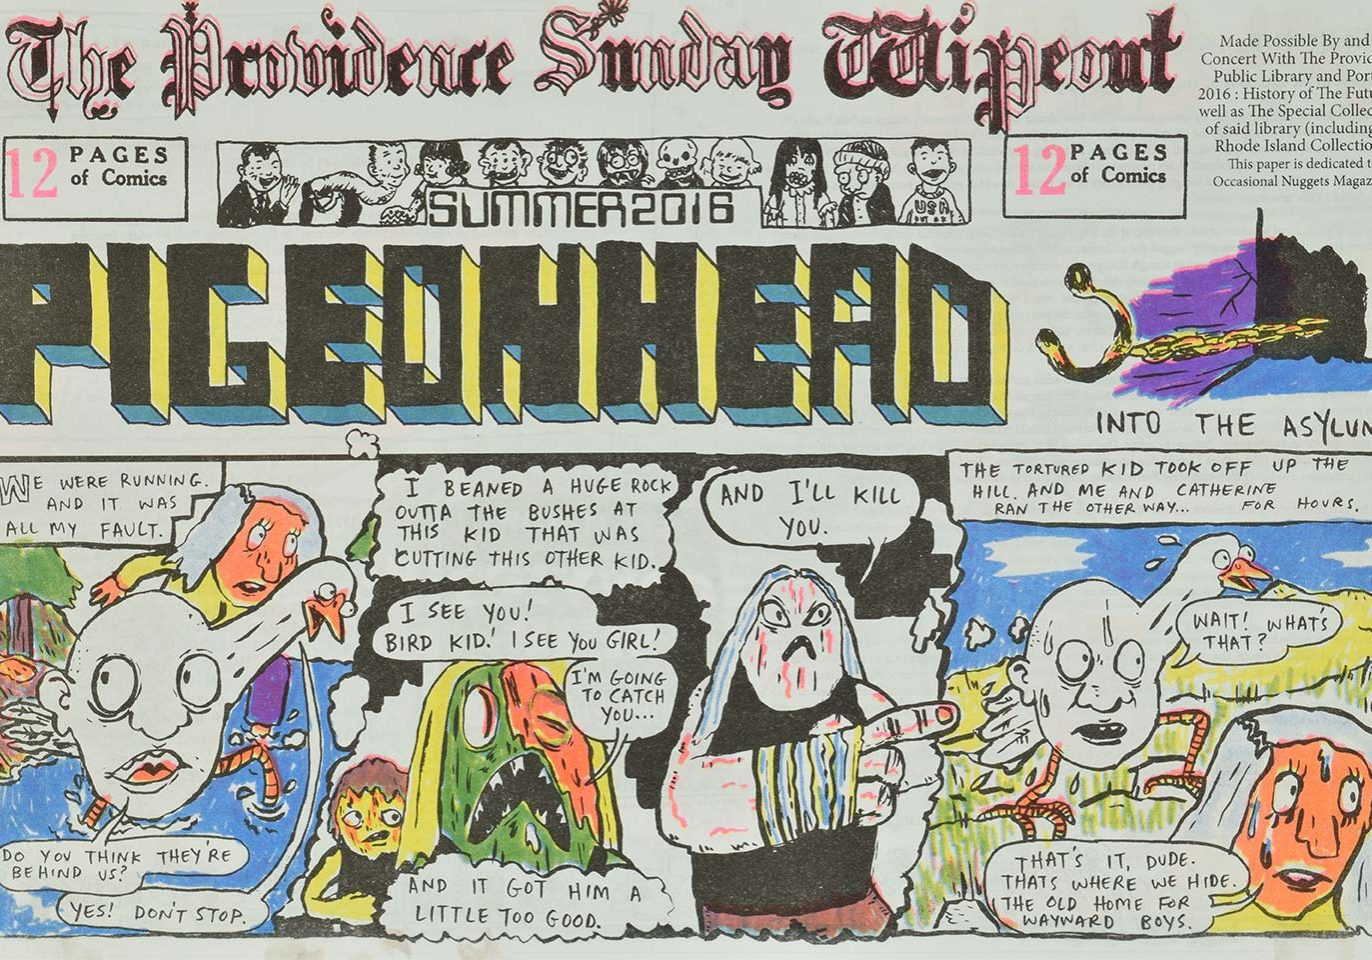 The front cover of The Providence Sunday Wipeout Comics Newspaper, produced by Walker Mettling as pat of his creative fellowship